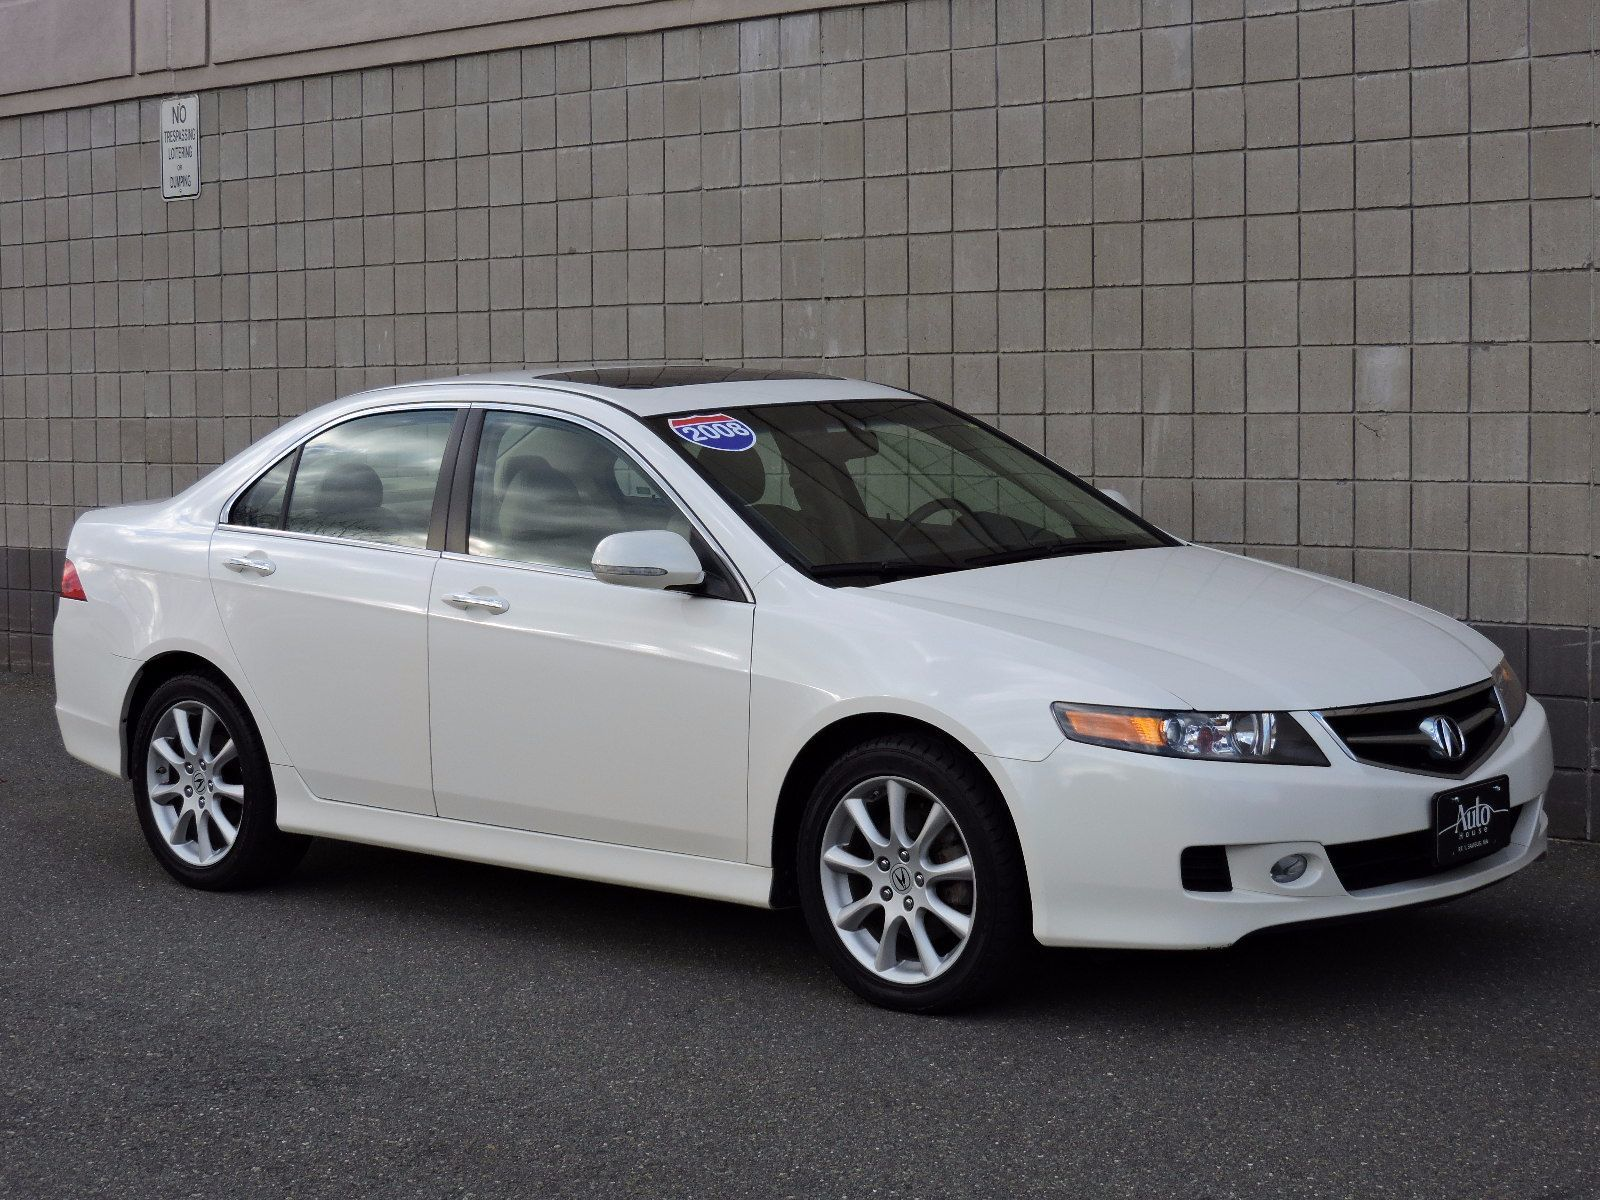 used 2008 acura tsx 2 0t at saugus auto mall rh saugusautomall com Acura TSX Manual Transmission Acura TSX Air Conditioning